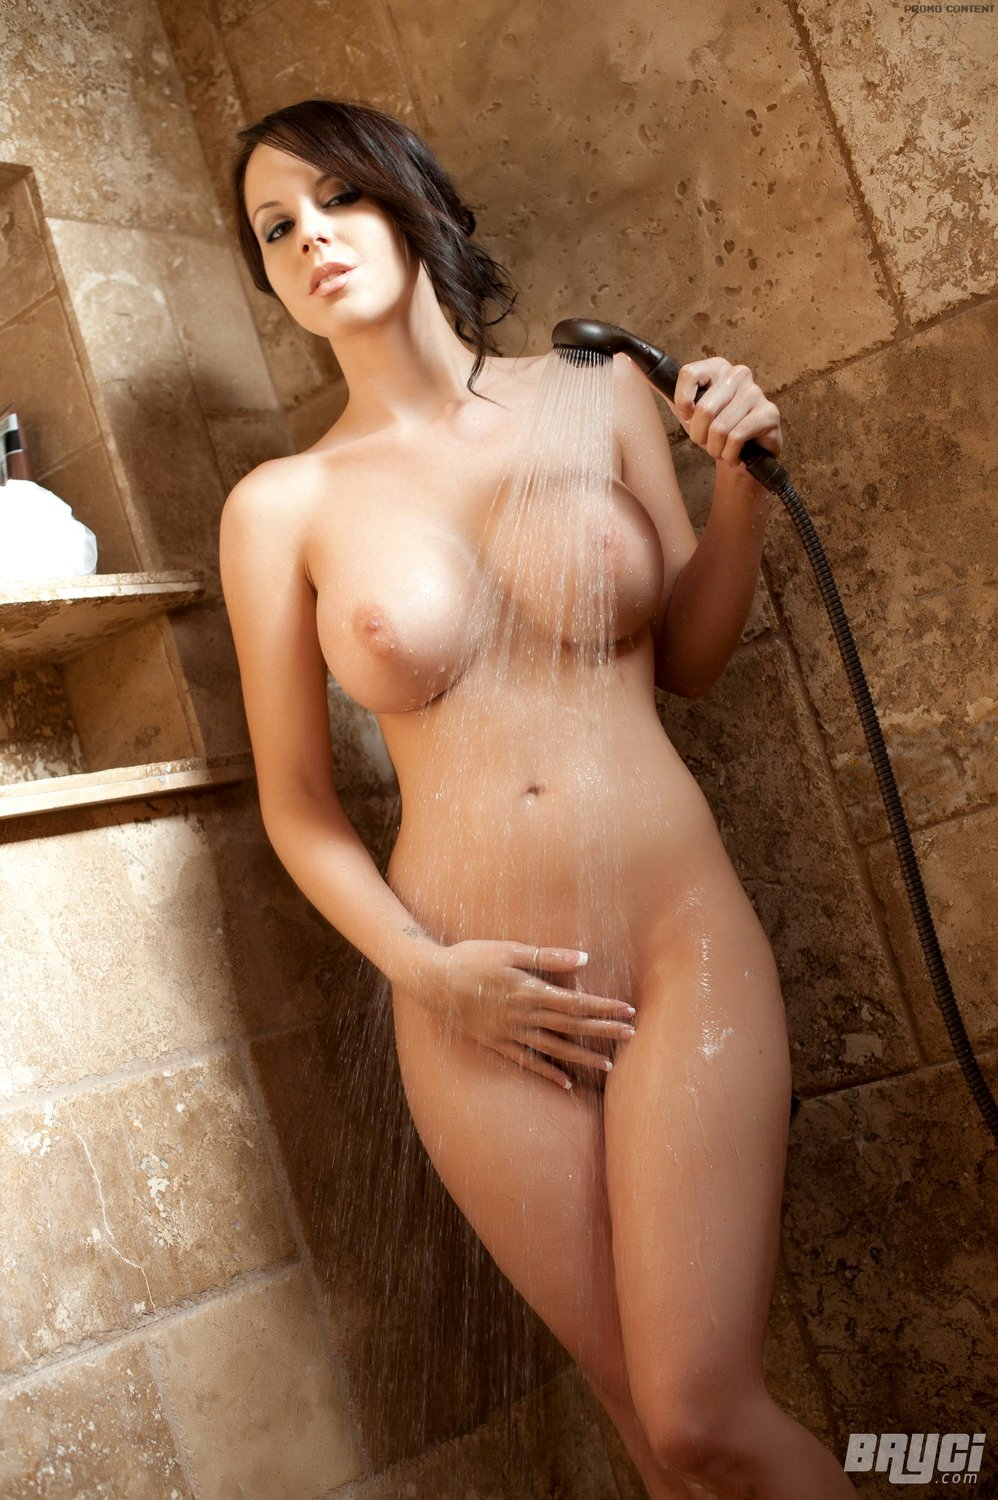 hot naked women in a shower